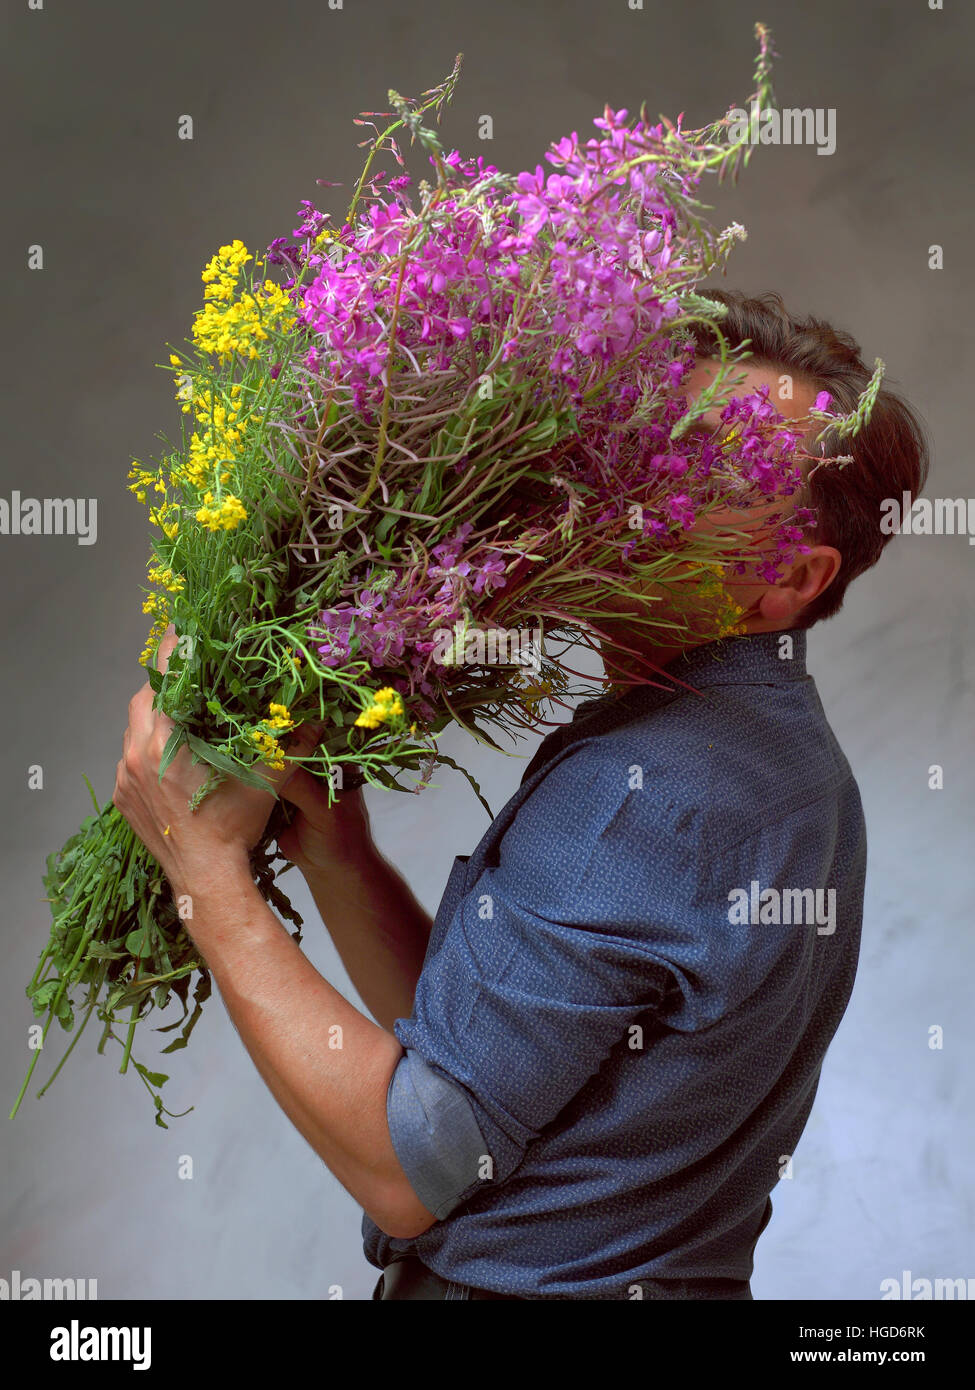 man holding a huge bouquet of wildflowers, a man came out on a date with flowers, man waiting for his love - Stock Image